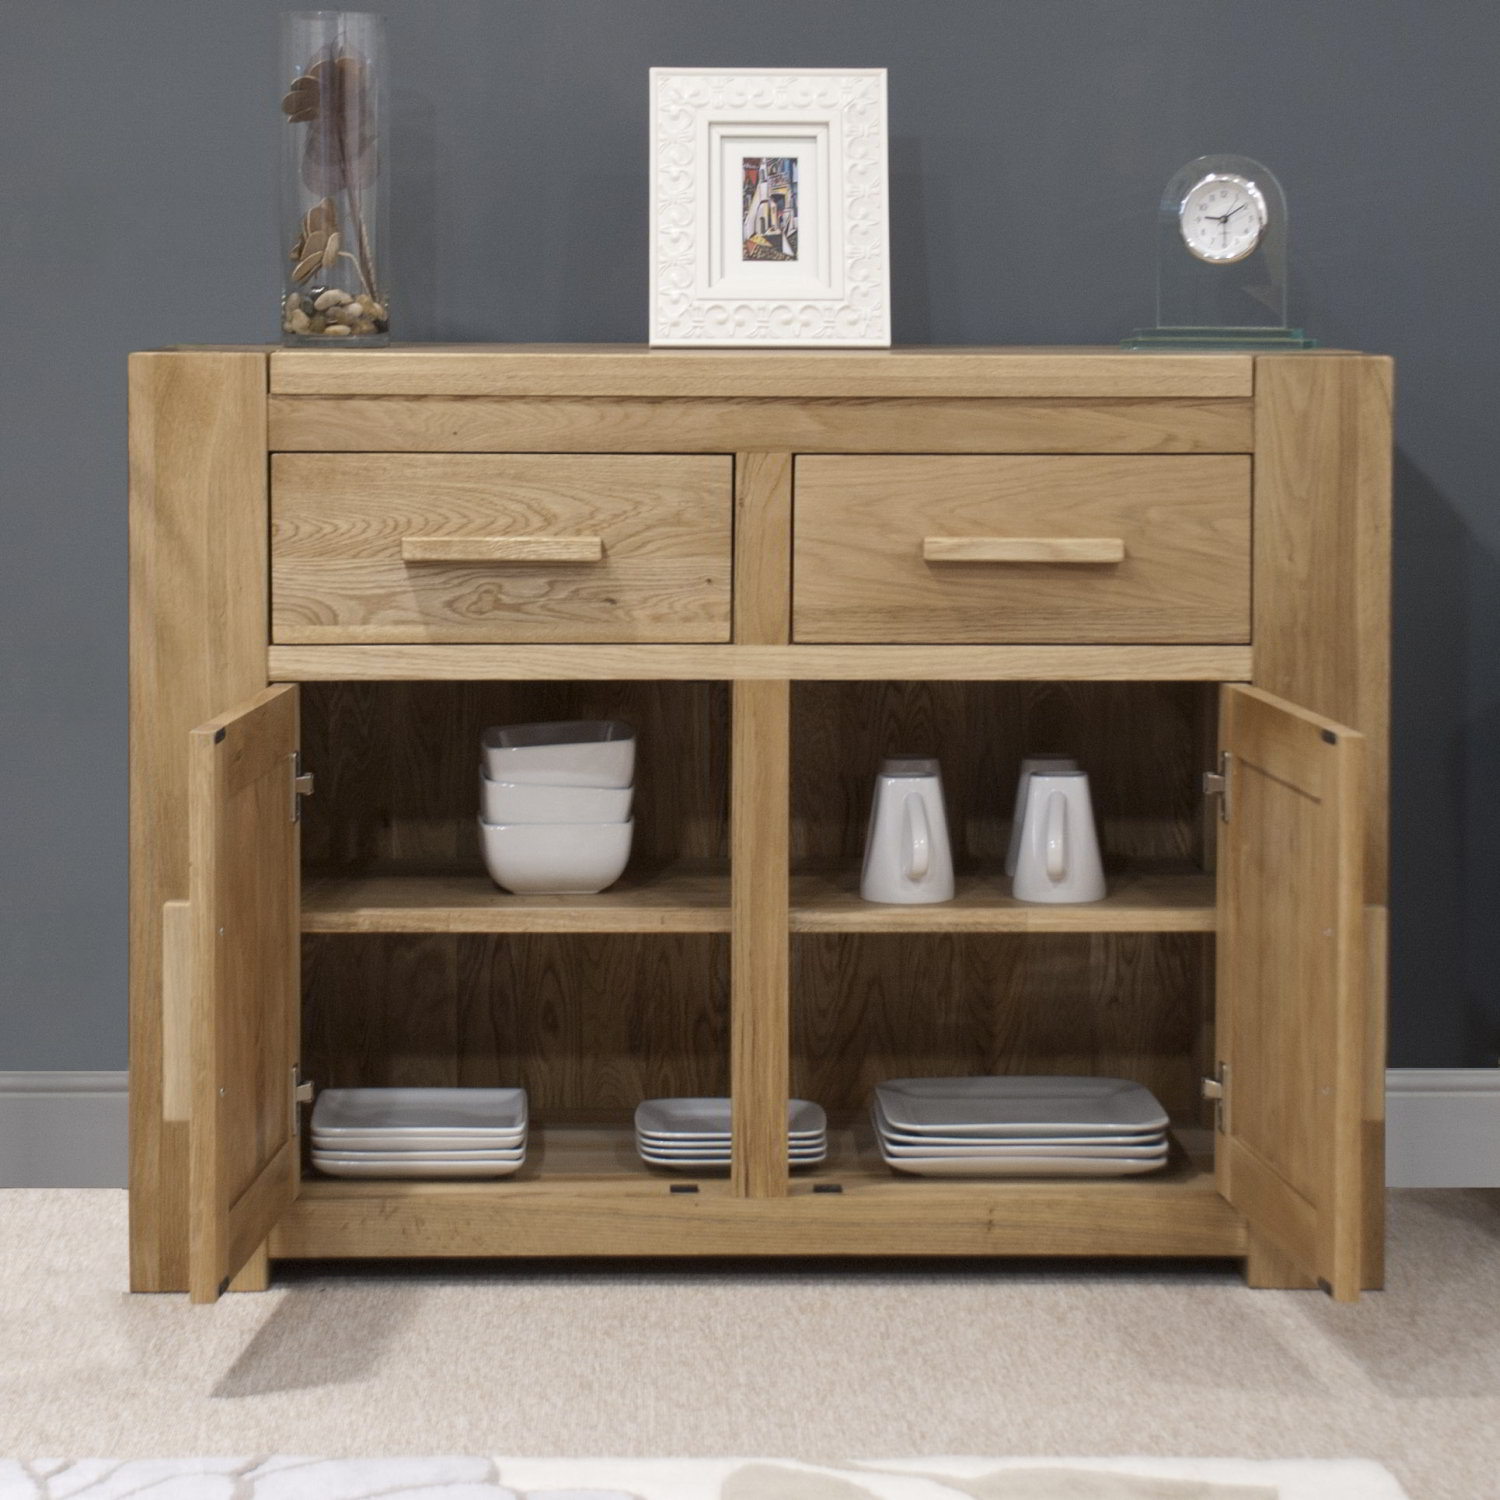 pemberton solid oak living room furniture medium storage sideboard